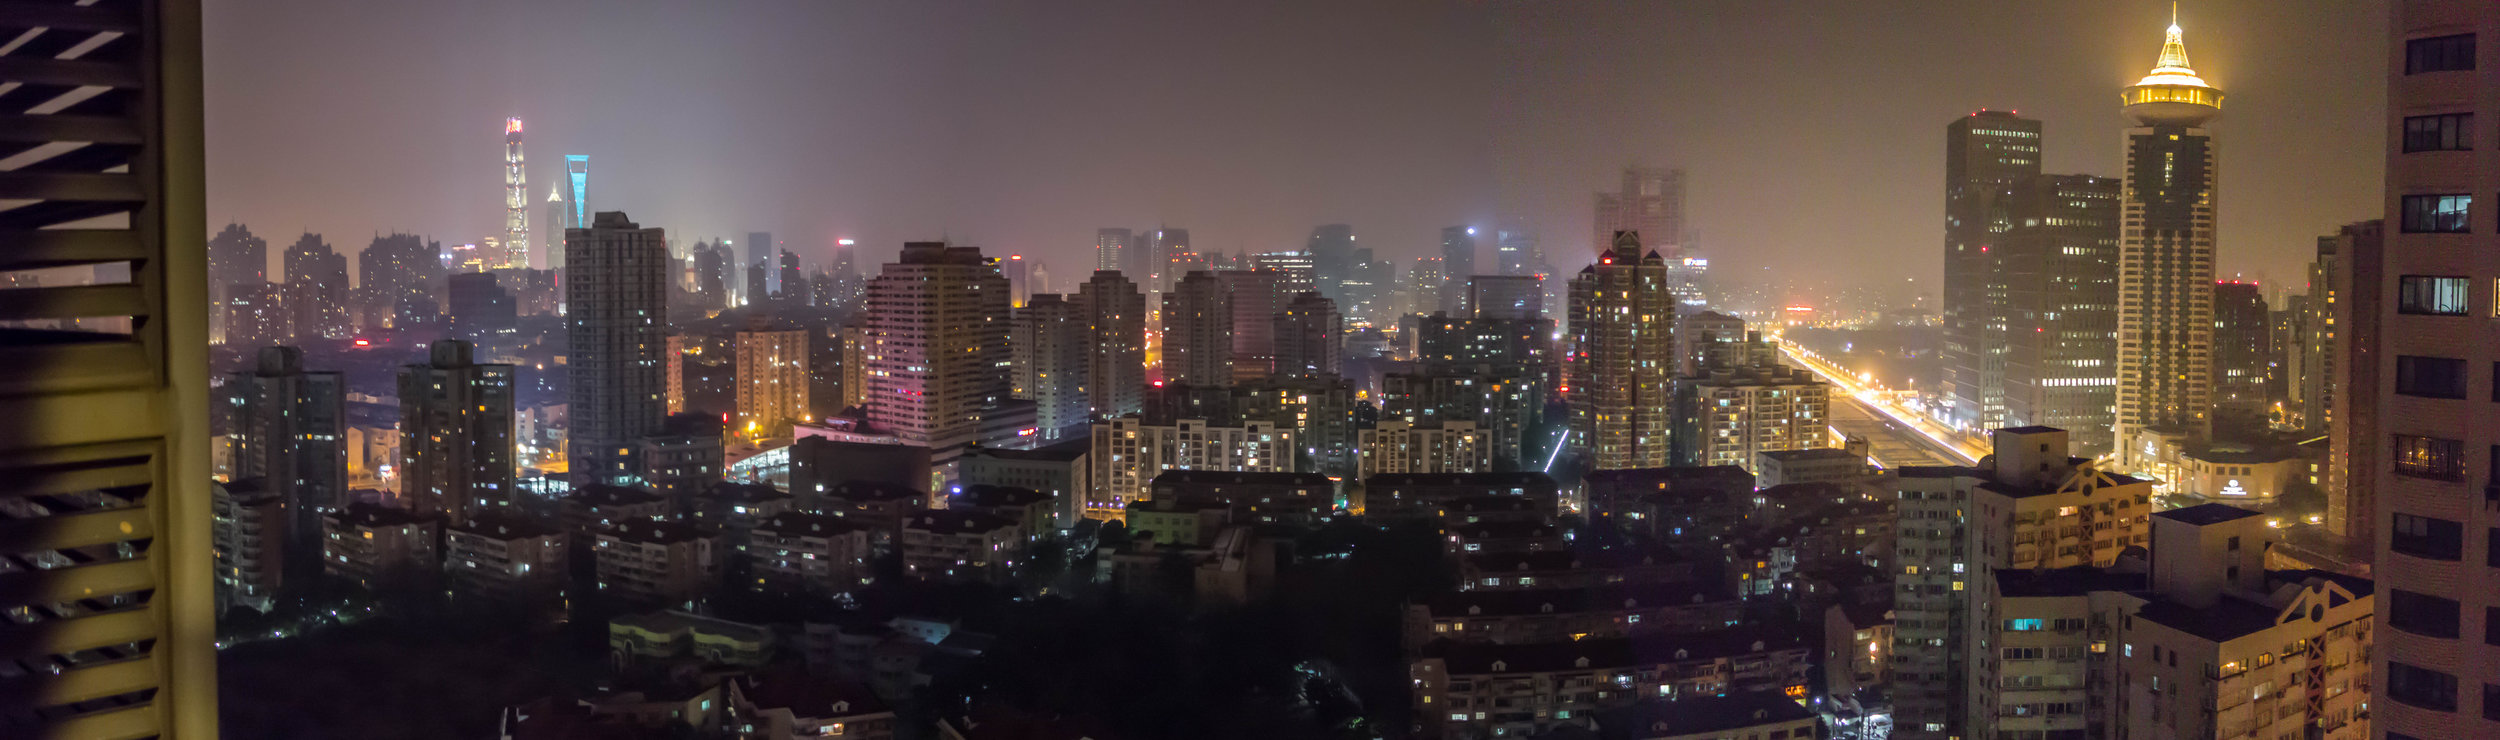 Night view of Pudong from our temporary apartment. Two of the tall skyscrapers are visible to the left in the distance.